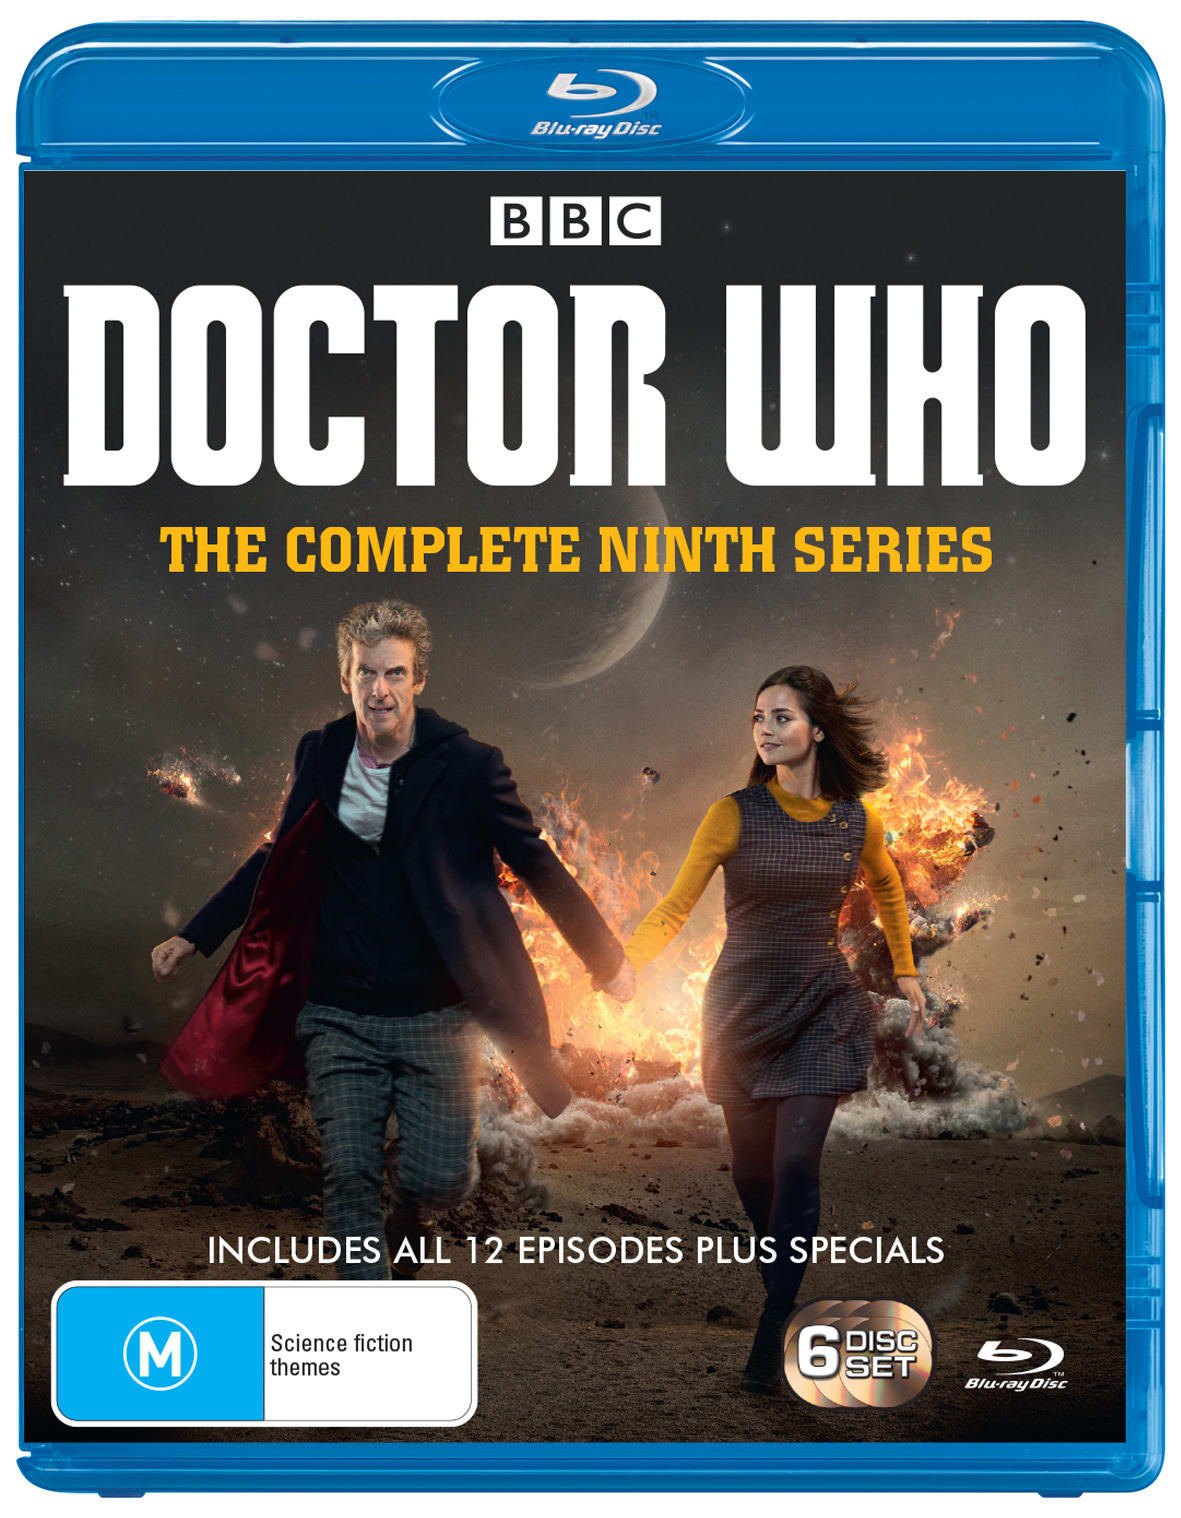 Doctor Who: The Complete Ninth Series (Box Set) [Blu-ray]